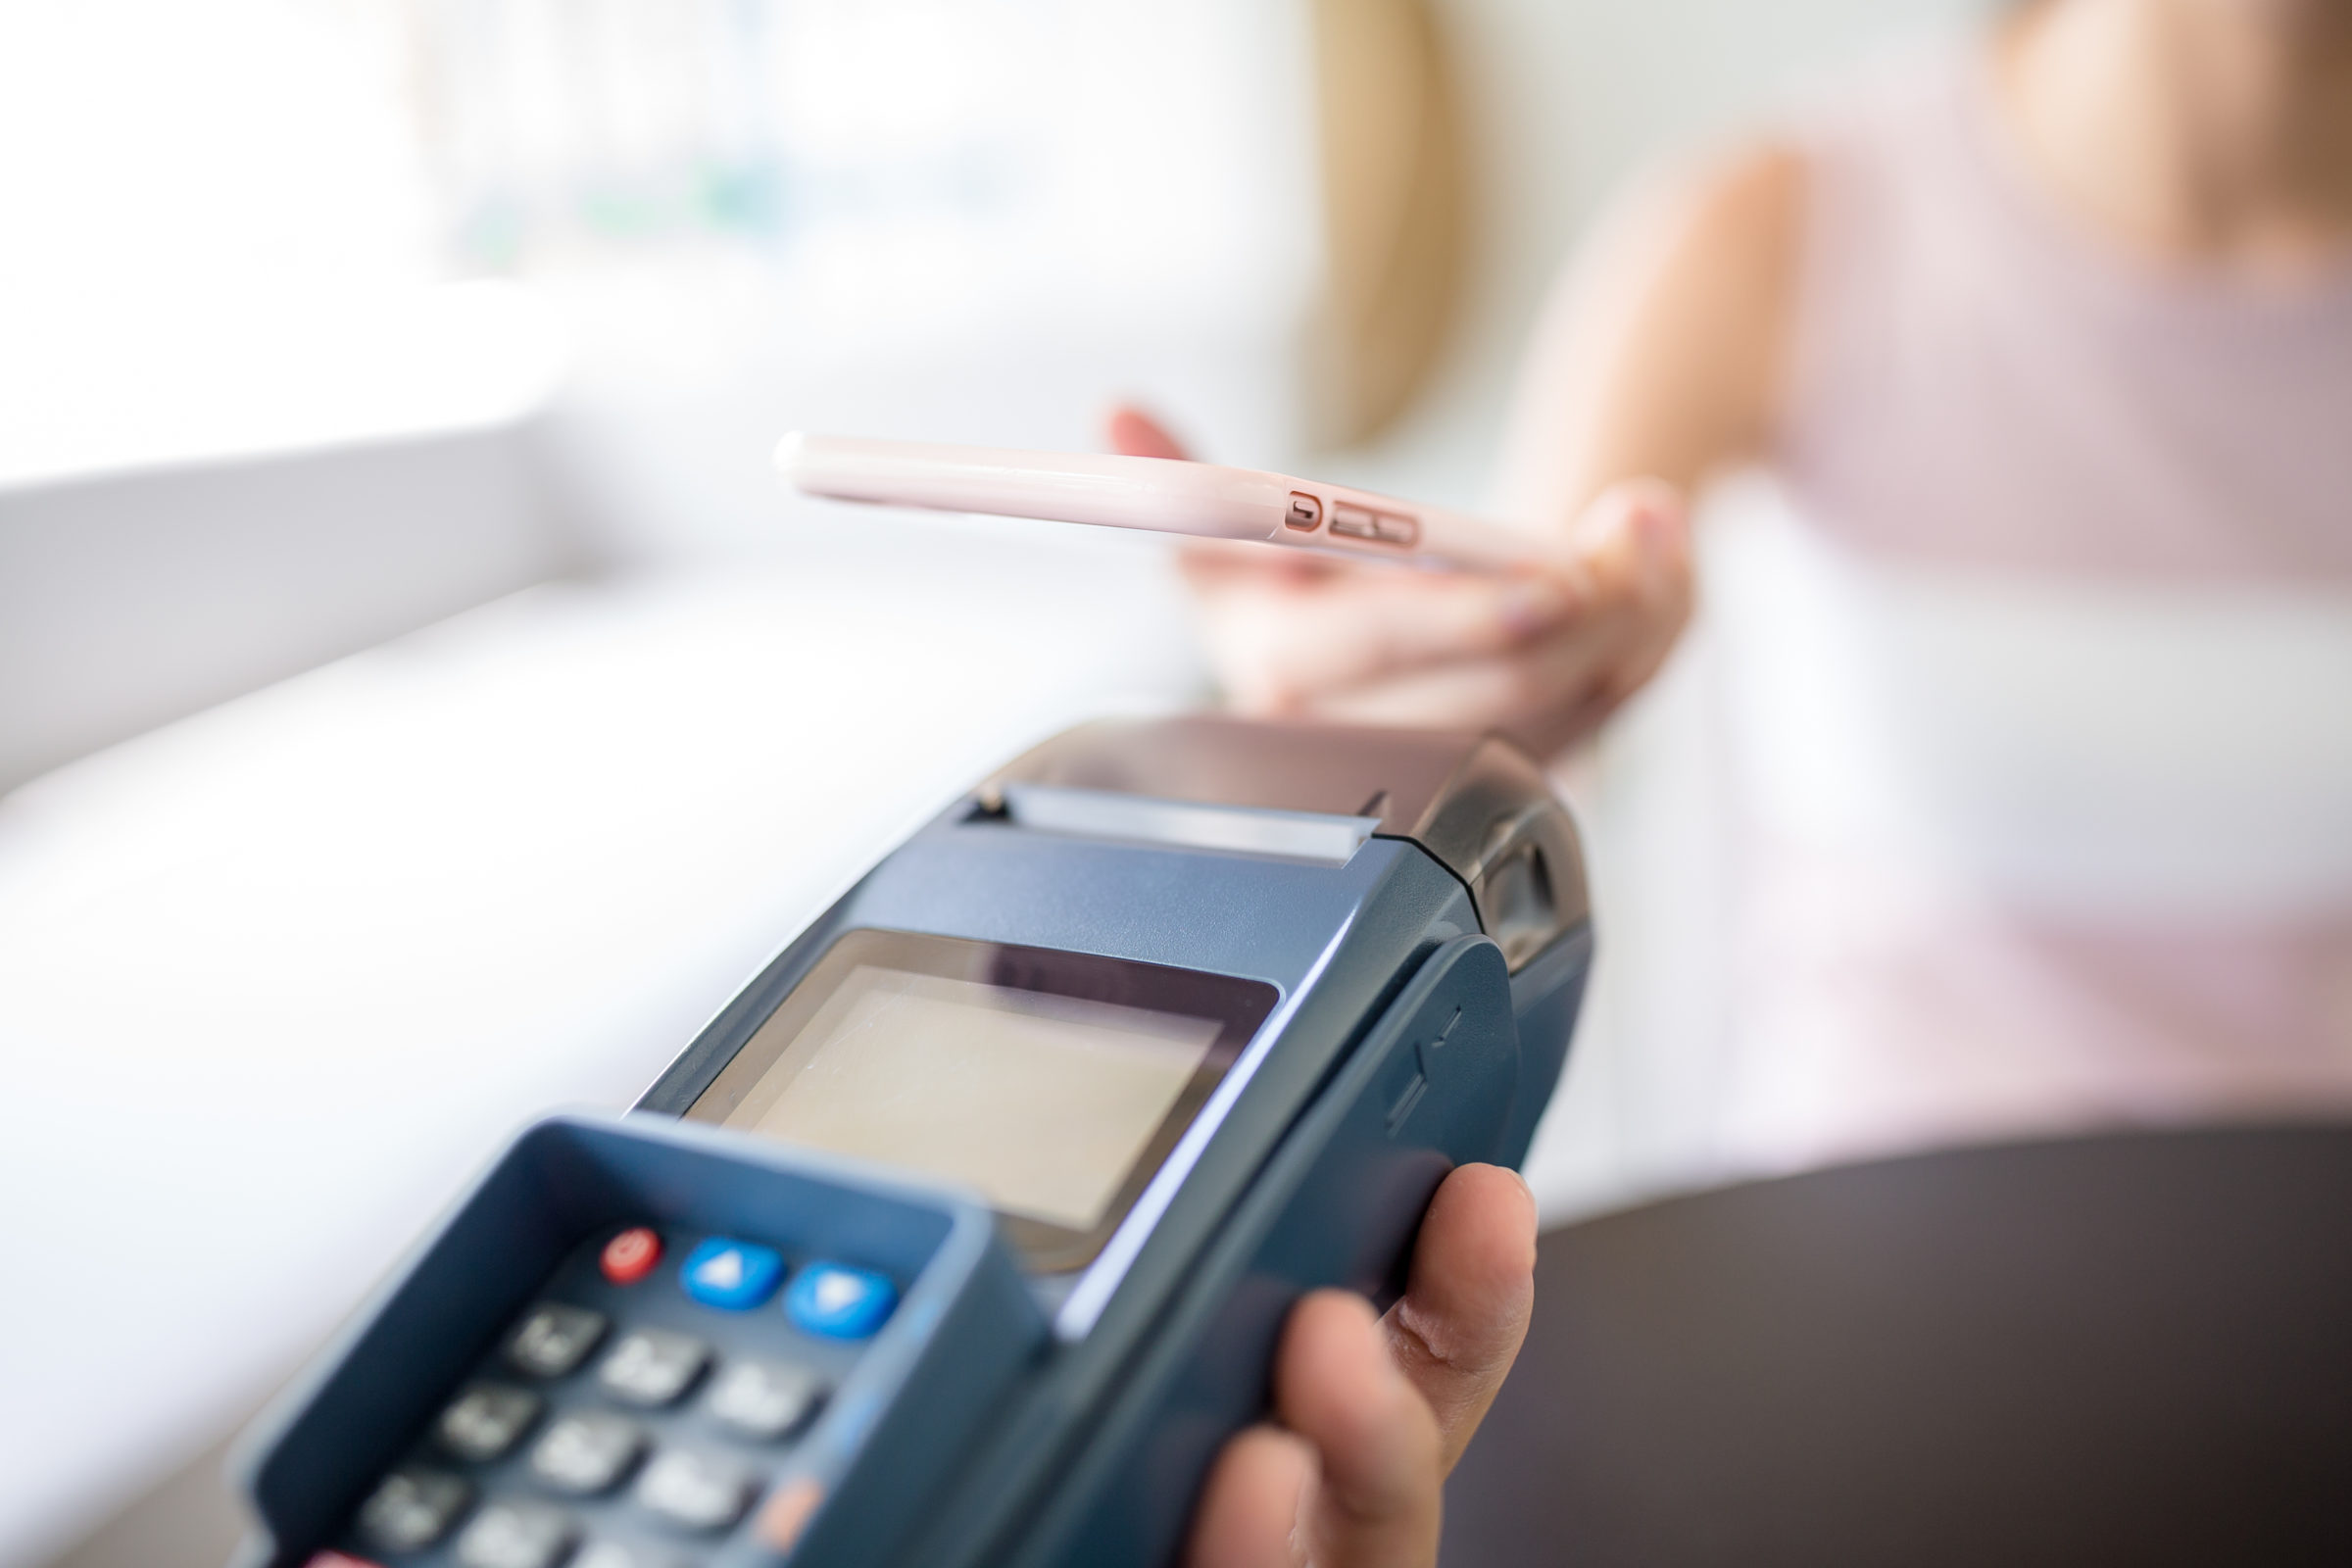 paying with smartphone TLE94YK